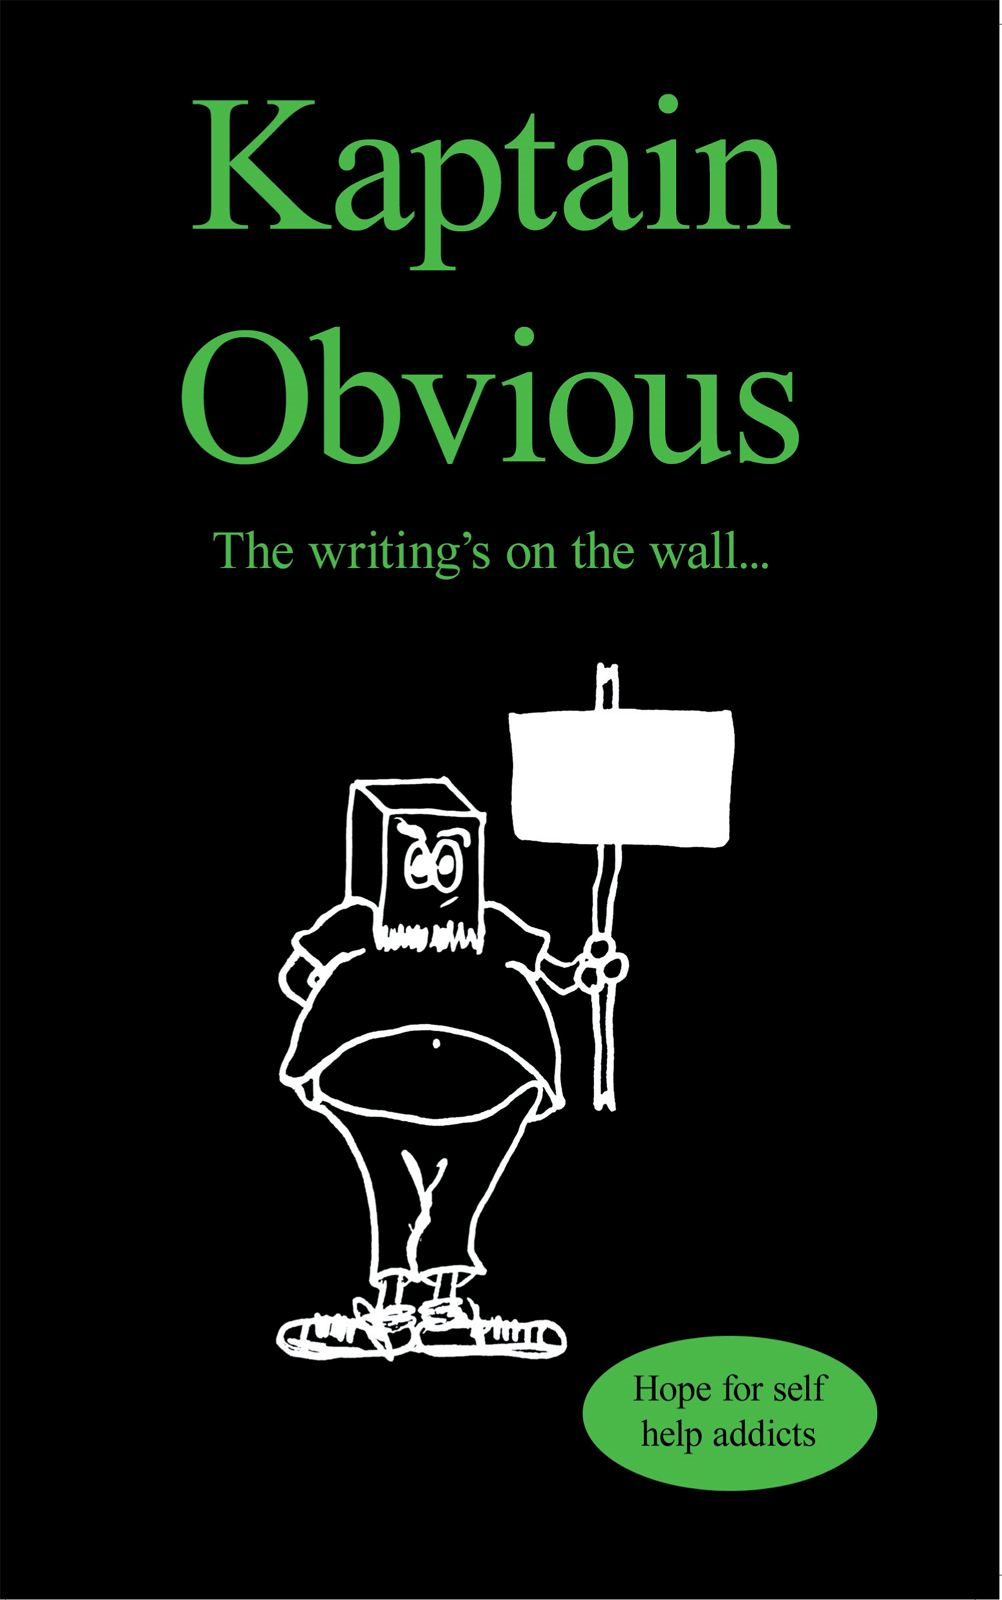 The writings on the wall…. By: Kaptain Obvious